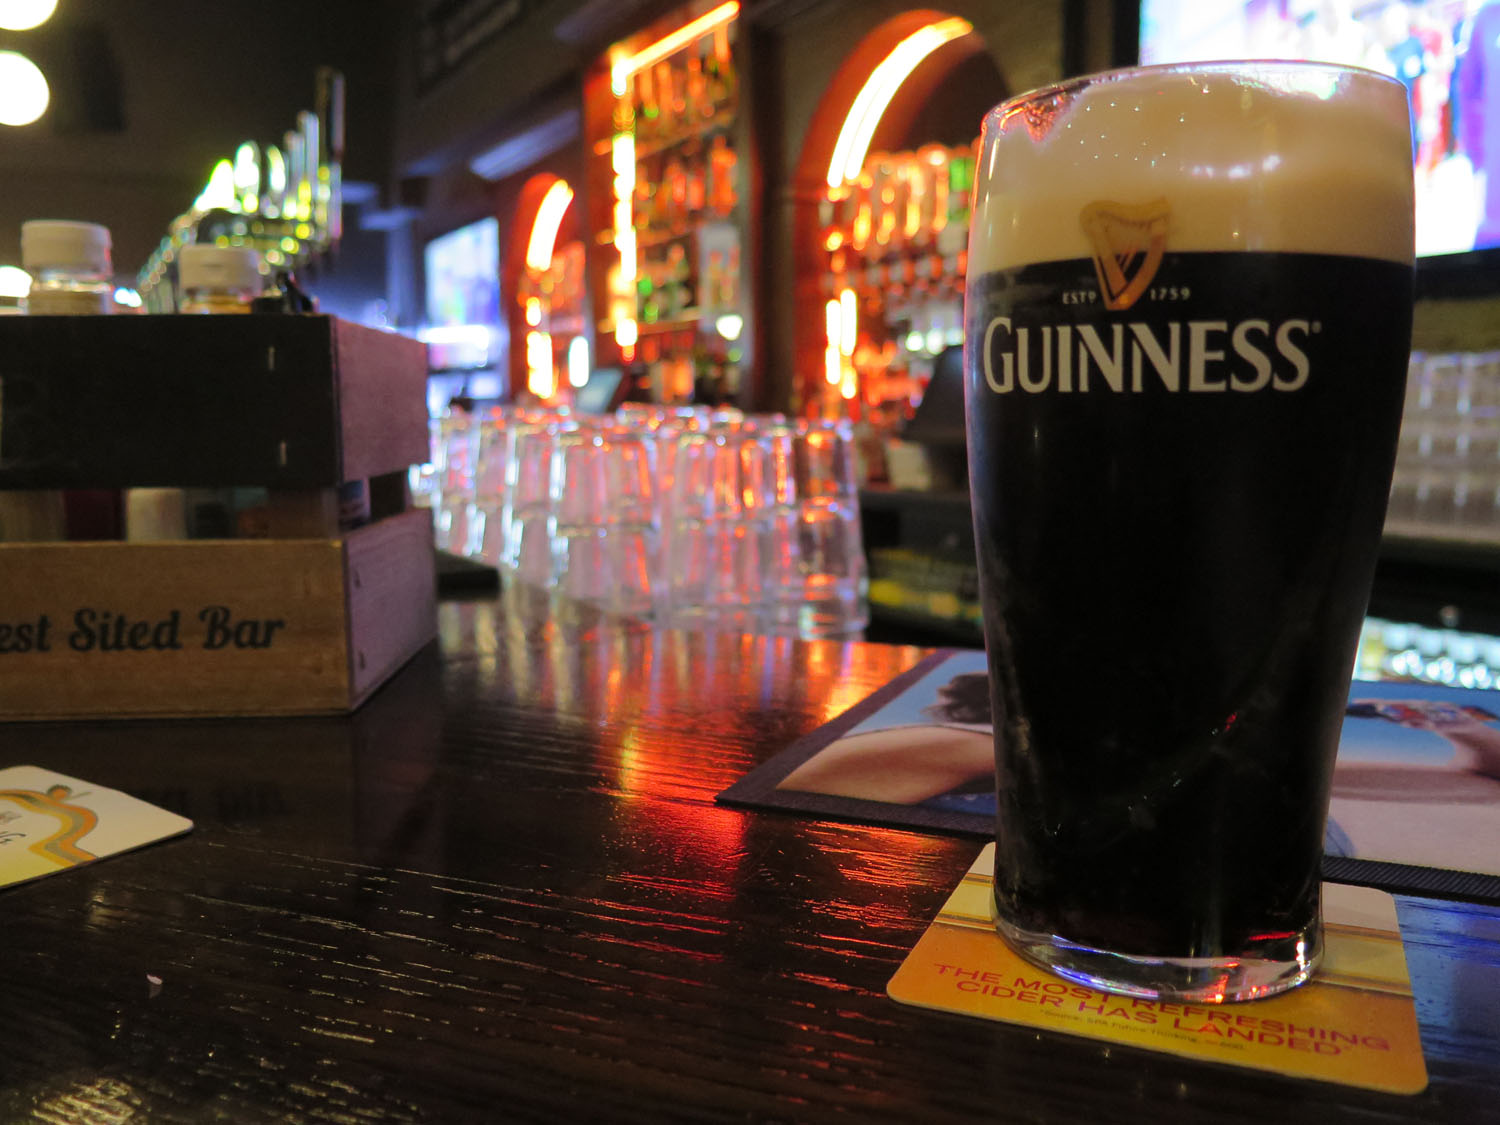 Northern-Ireland-Derry-Londonderry-Guinness